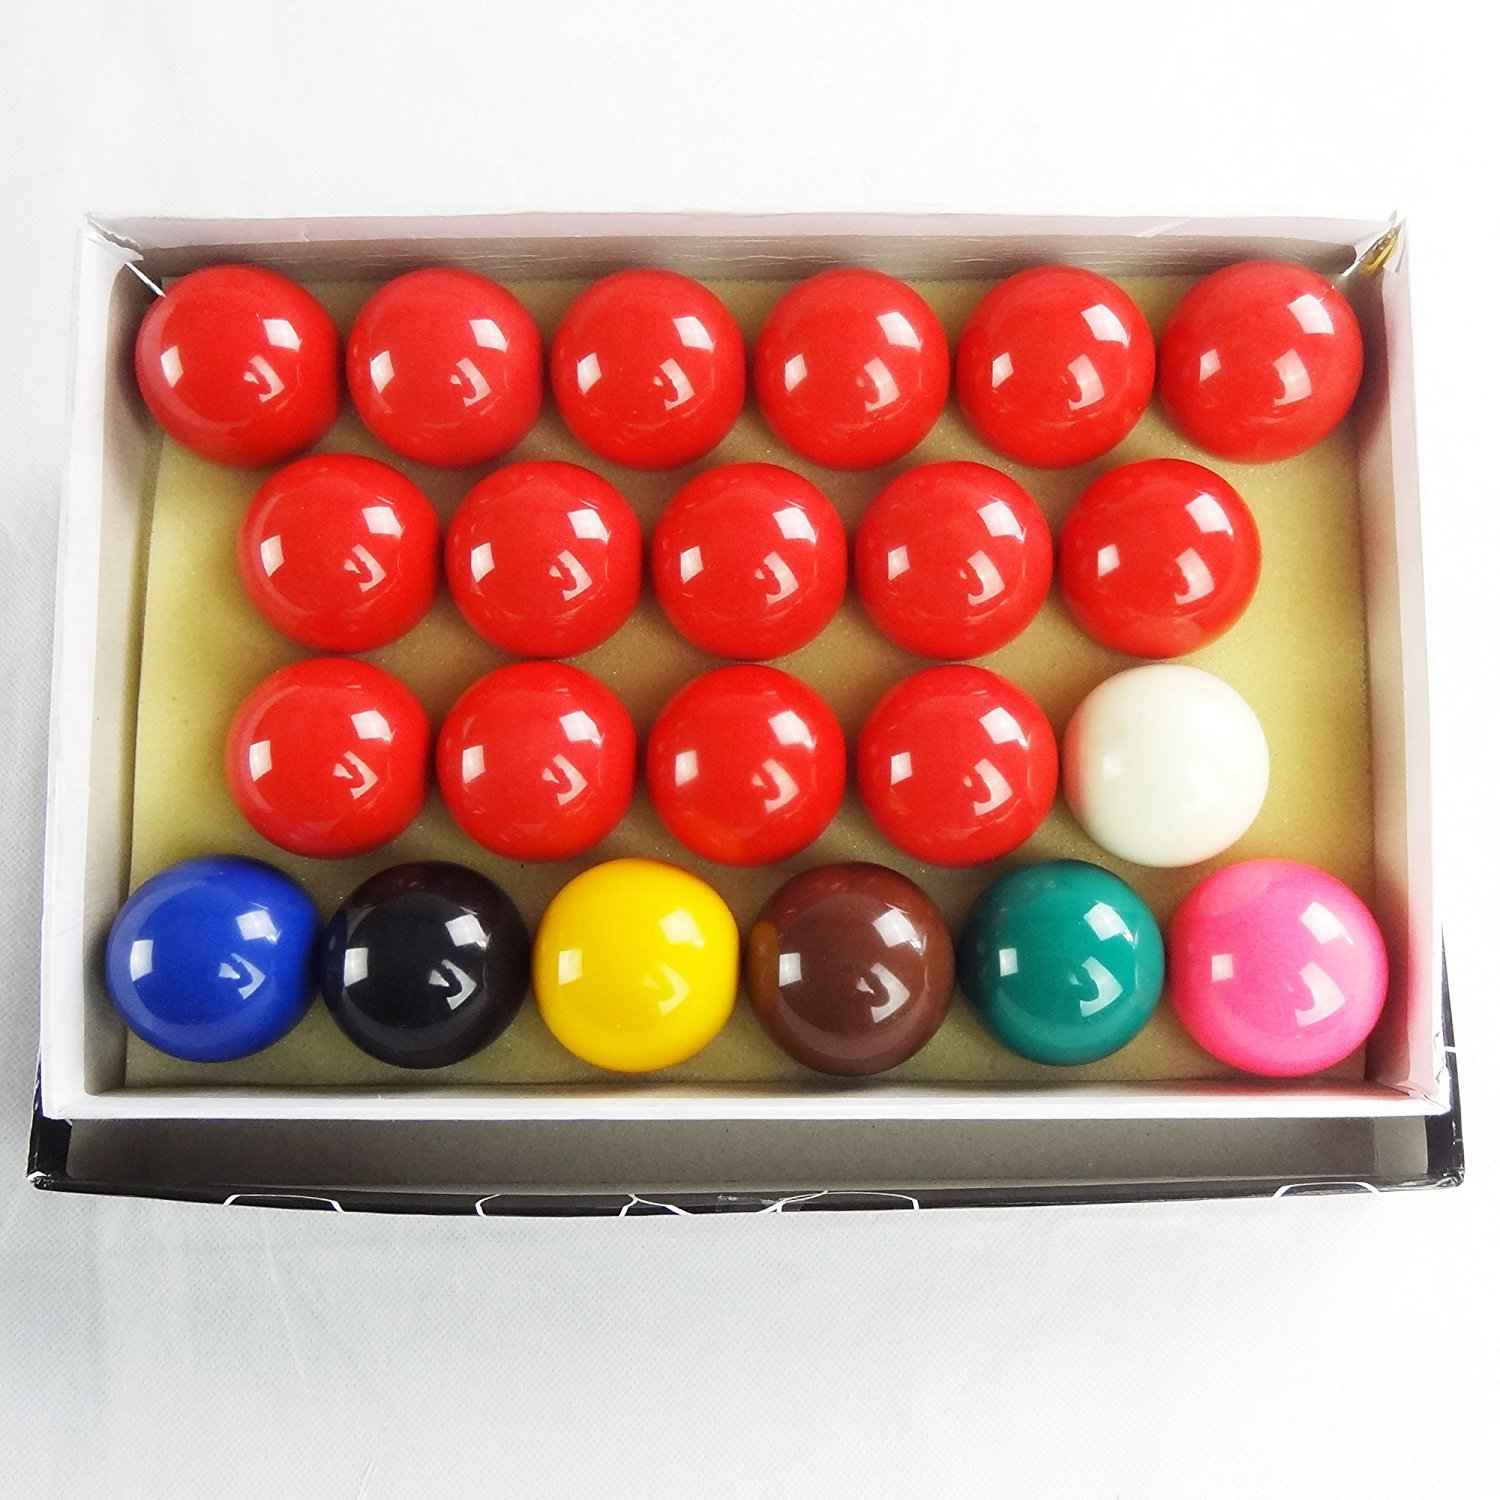 Mace Snooker Ball Set American Snooker Balls Billiard Balls Pool Balls, Complete 22 Ball Set, 2-1/16